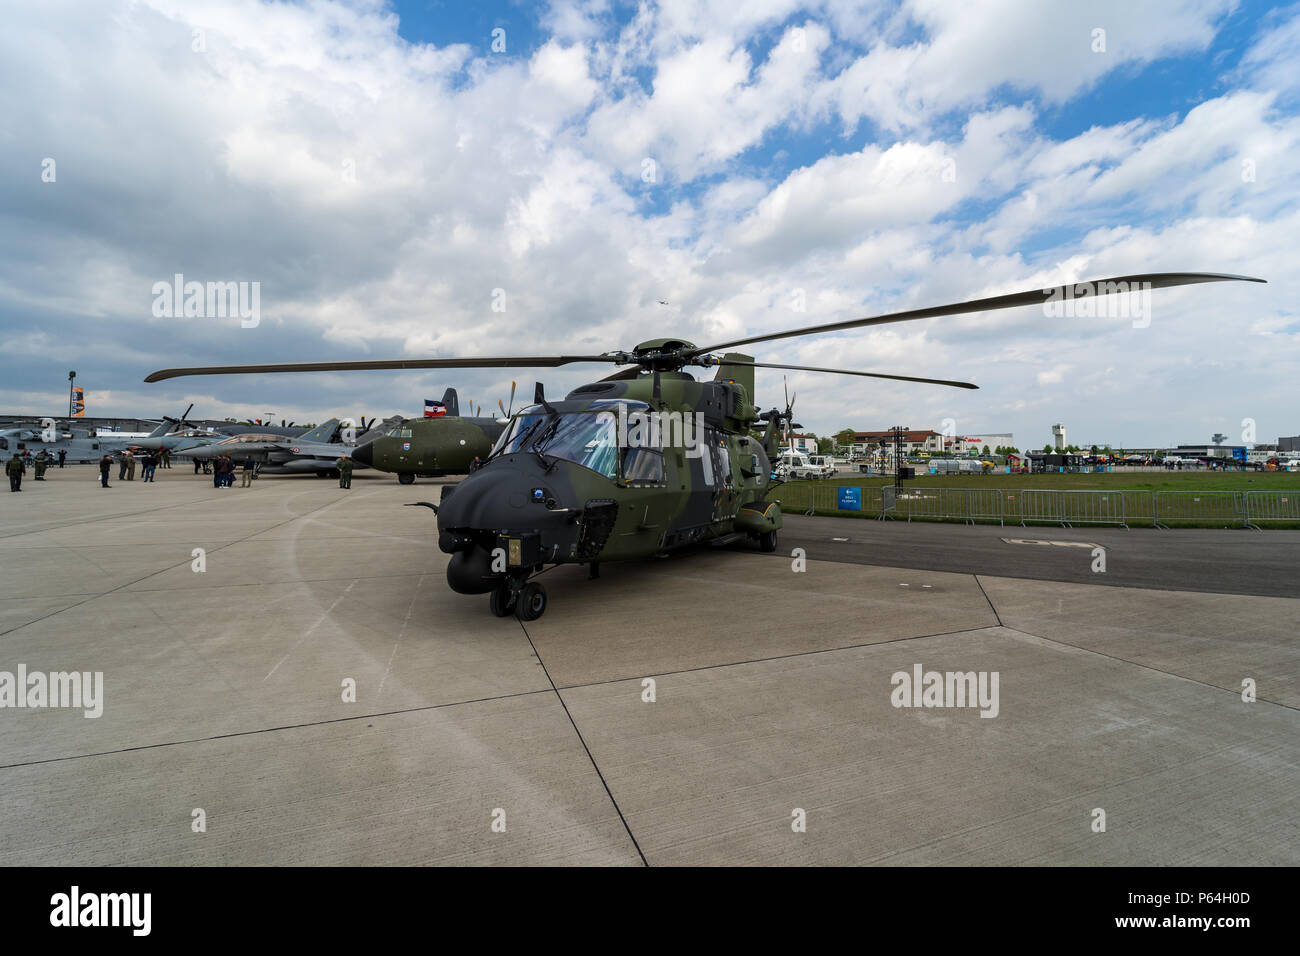 BERLIN, GERMANY - APRIL 25, 2018: Medium utility military helicopter NHIndustries NH90. German Army. Exhibition ILA Berlin Air Show 2018. - Stock Image